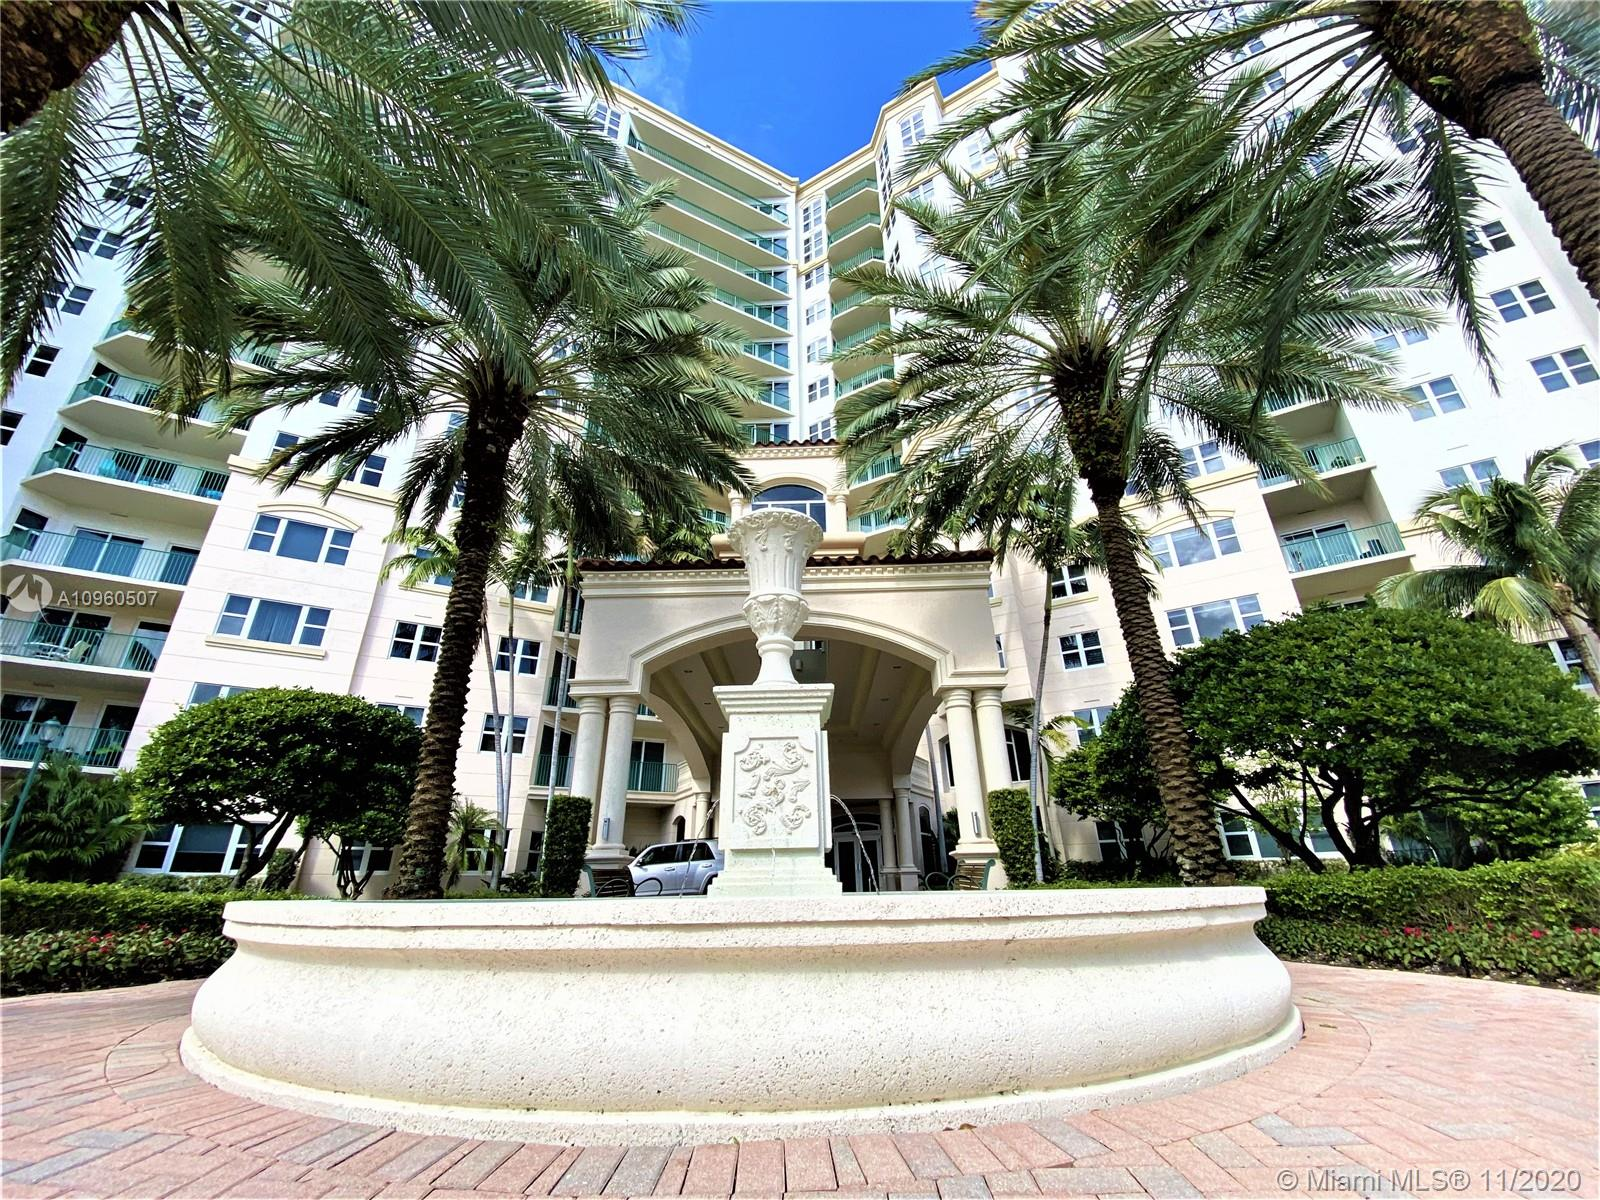 Turnberry Village South Tower #202 - 19900 E Country Club Dr #202, Aventura, FL 33180